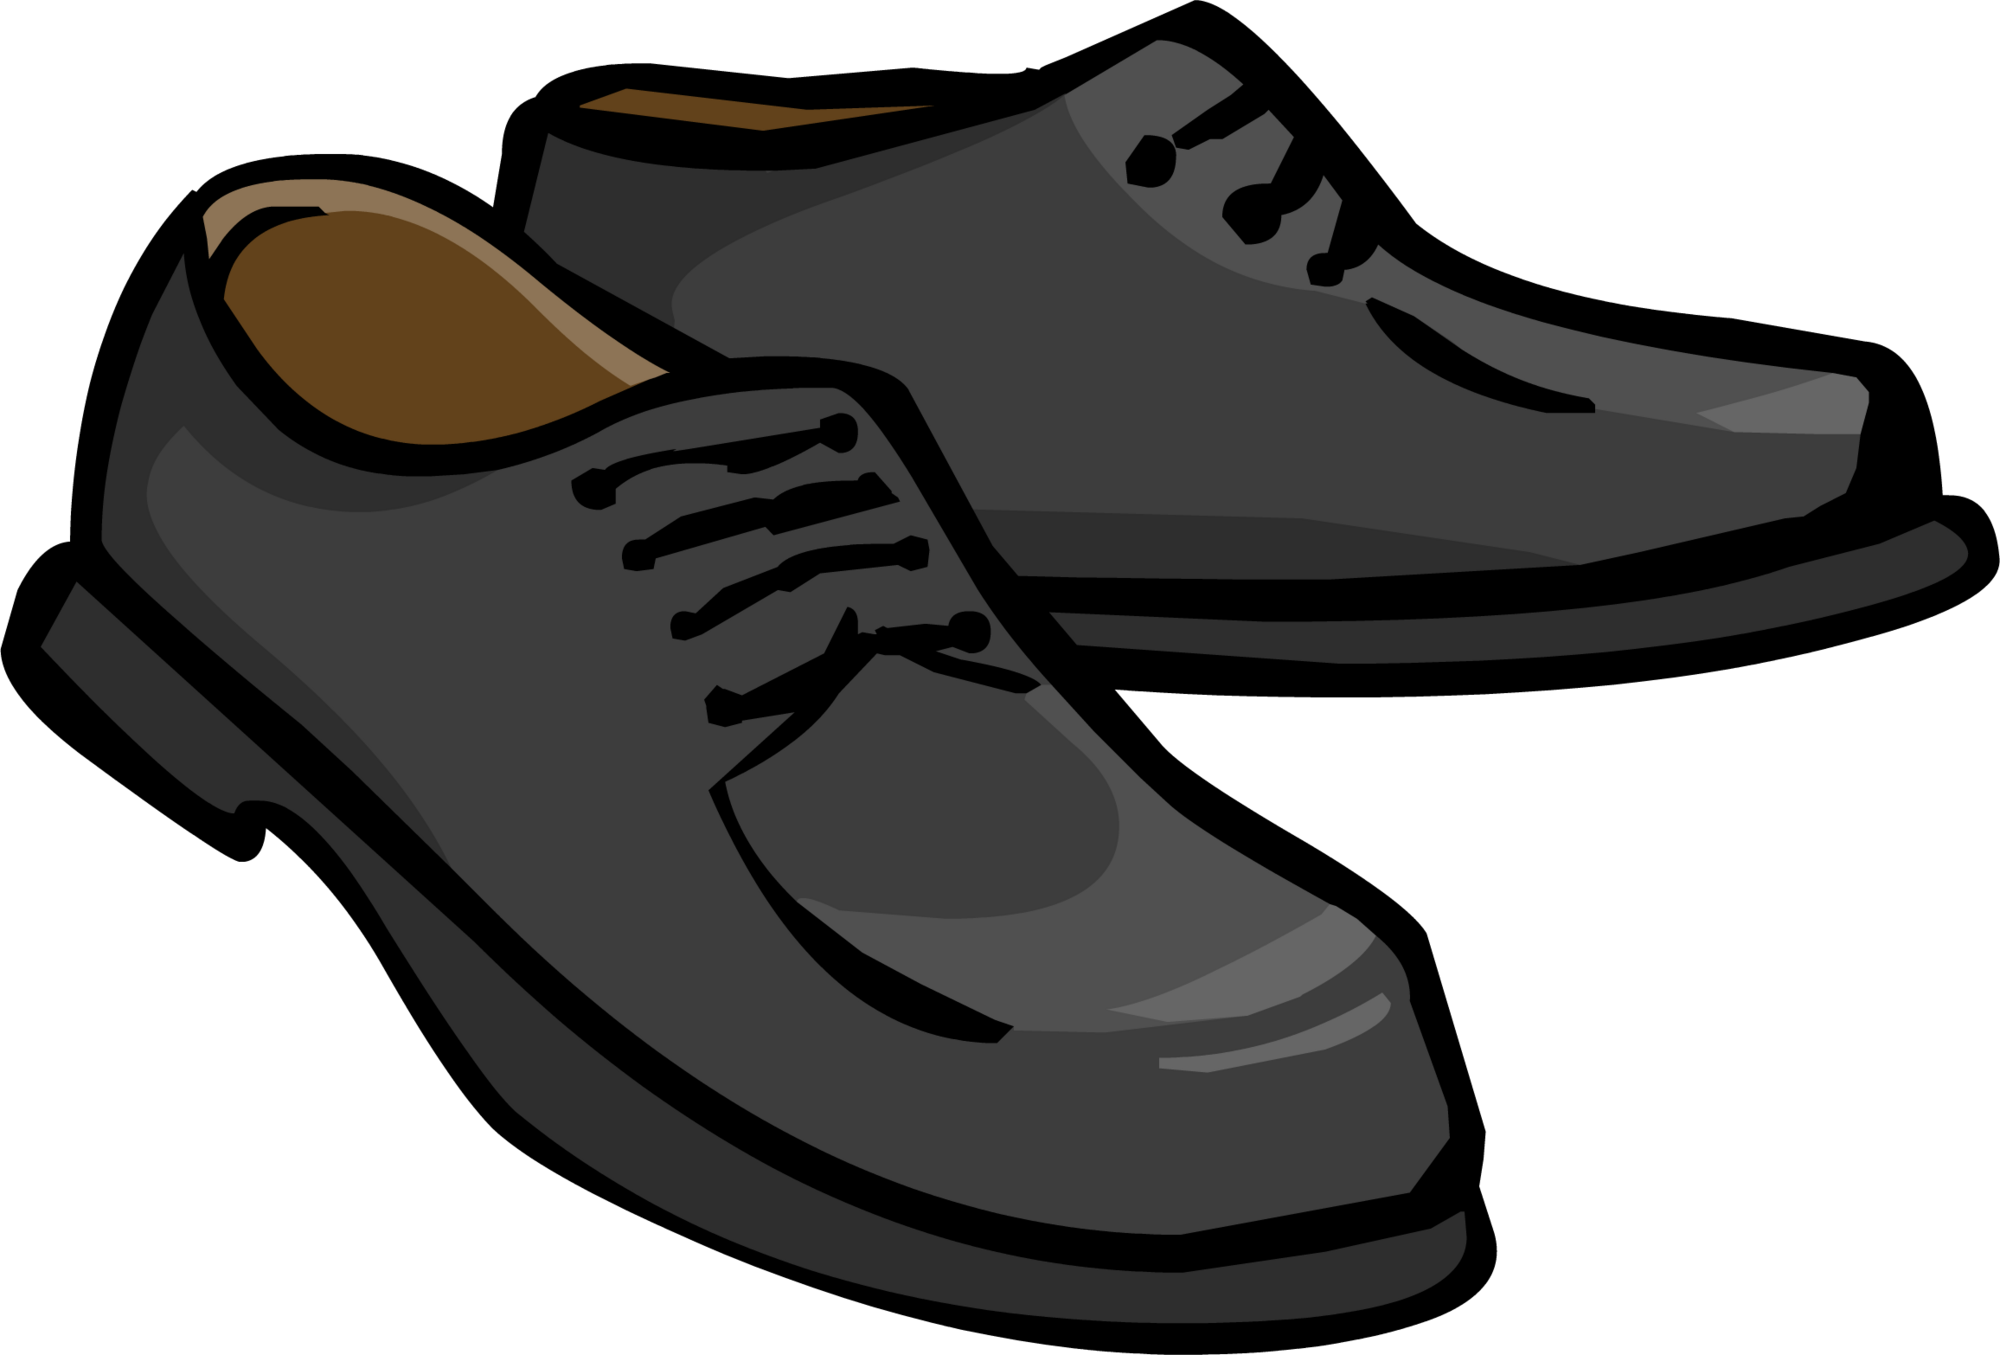 Black Dress Shoes | Club Penguin Wiki | FANDOM powered by ...